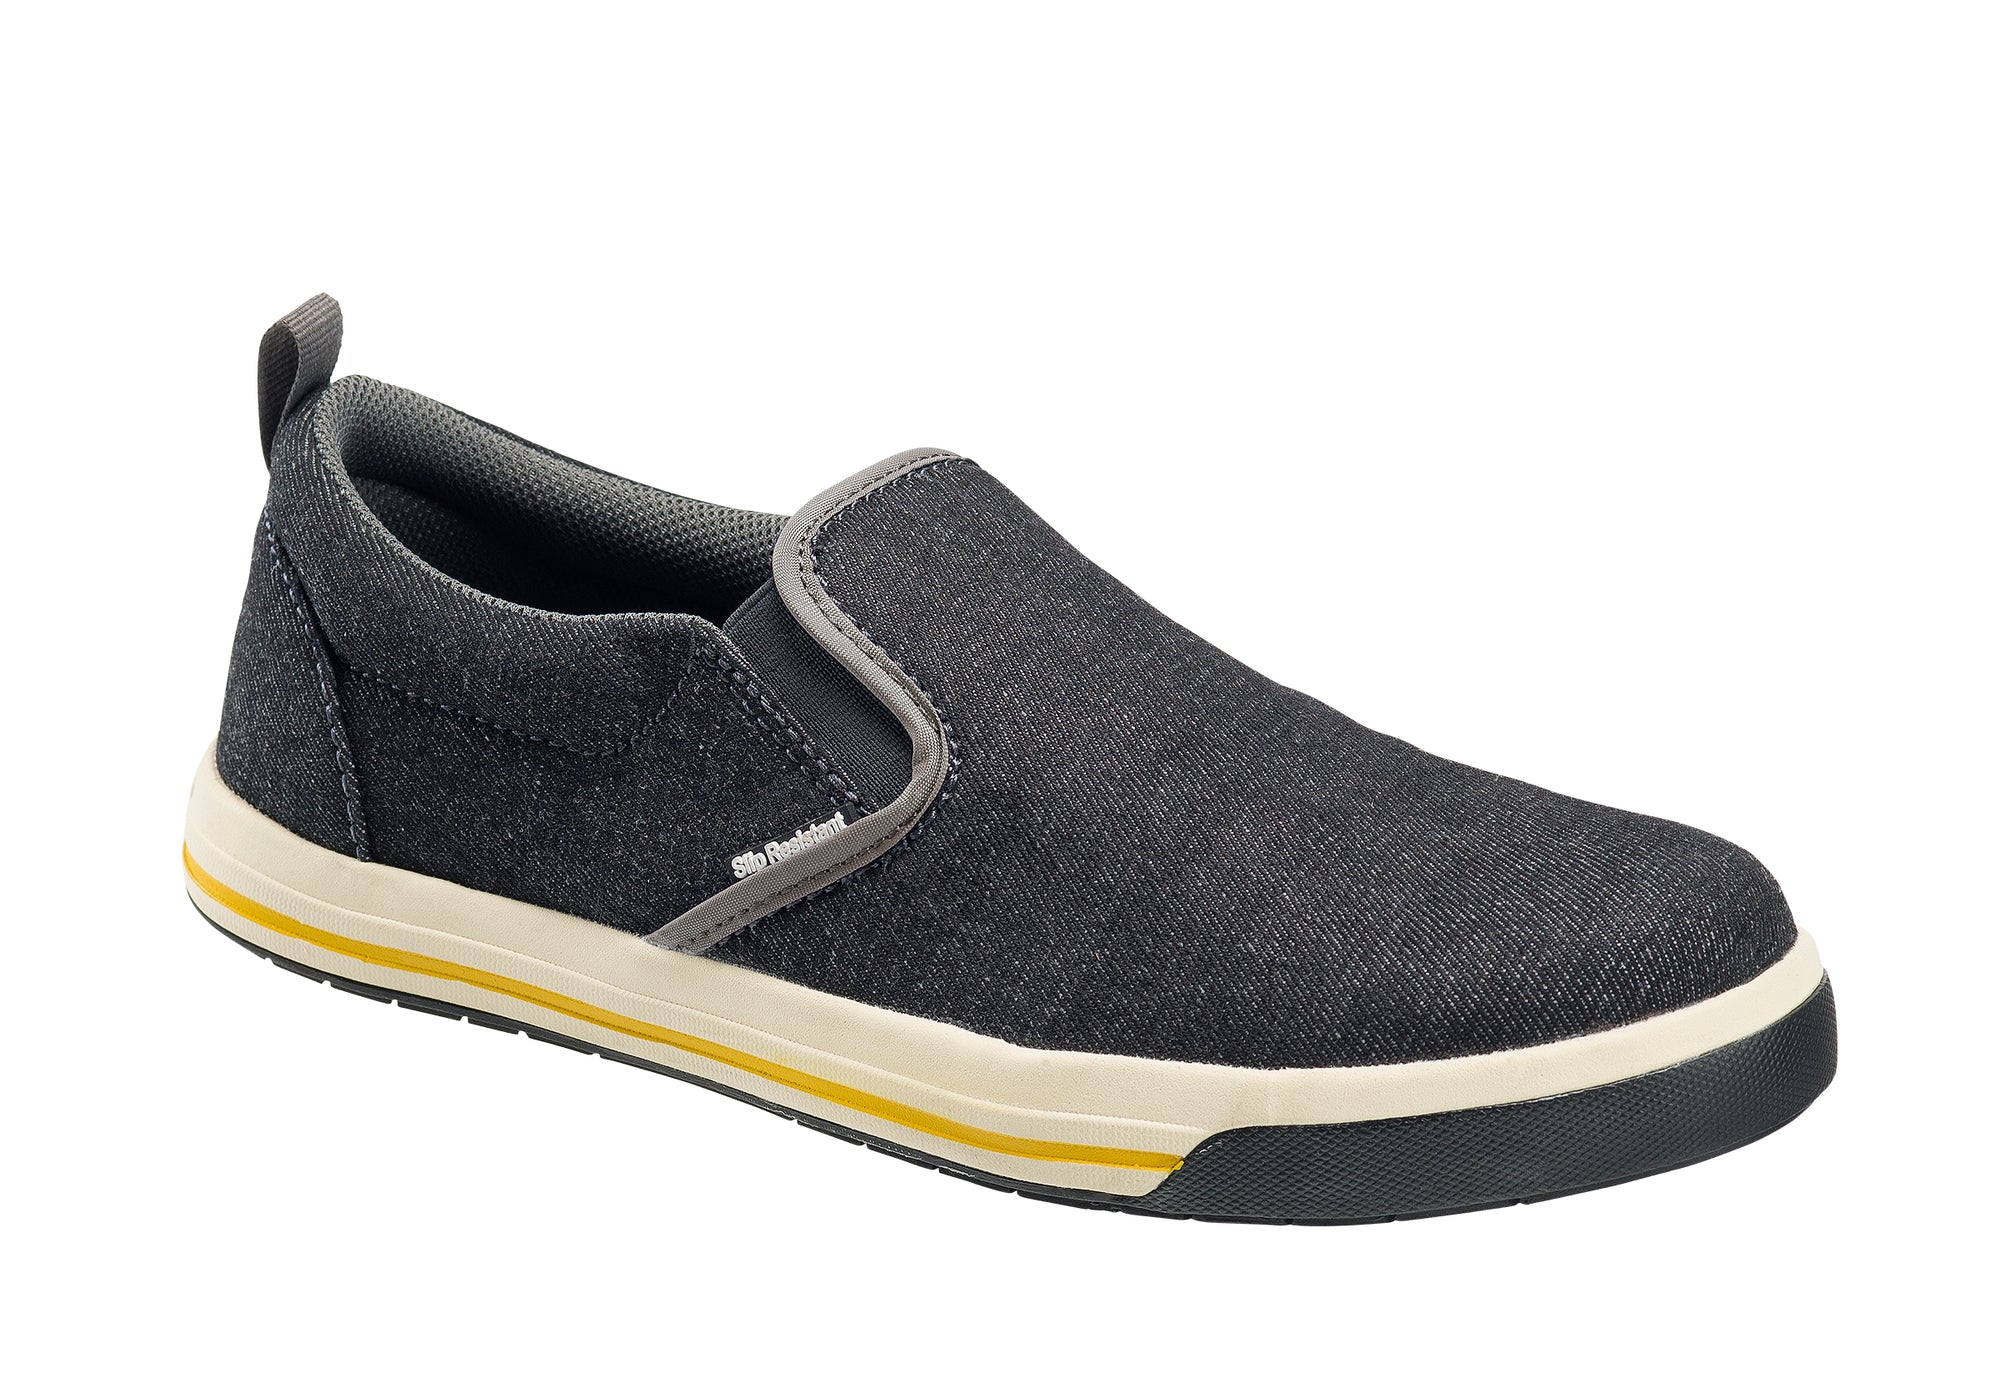 Westside Black Steel Toe SD10 Slip On Work Shoe